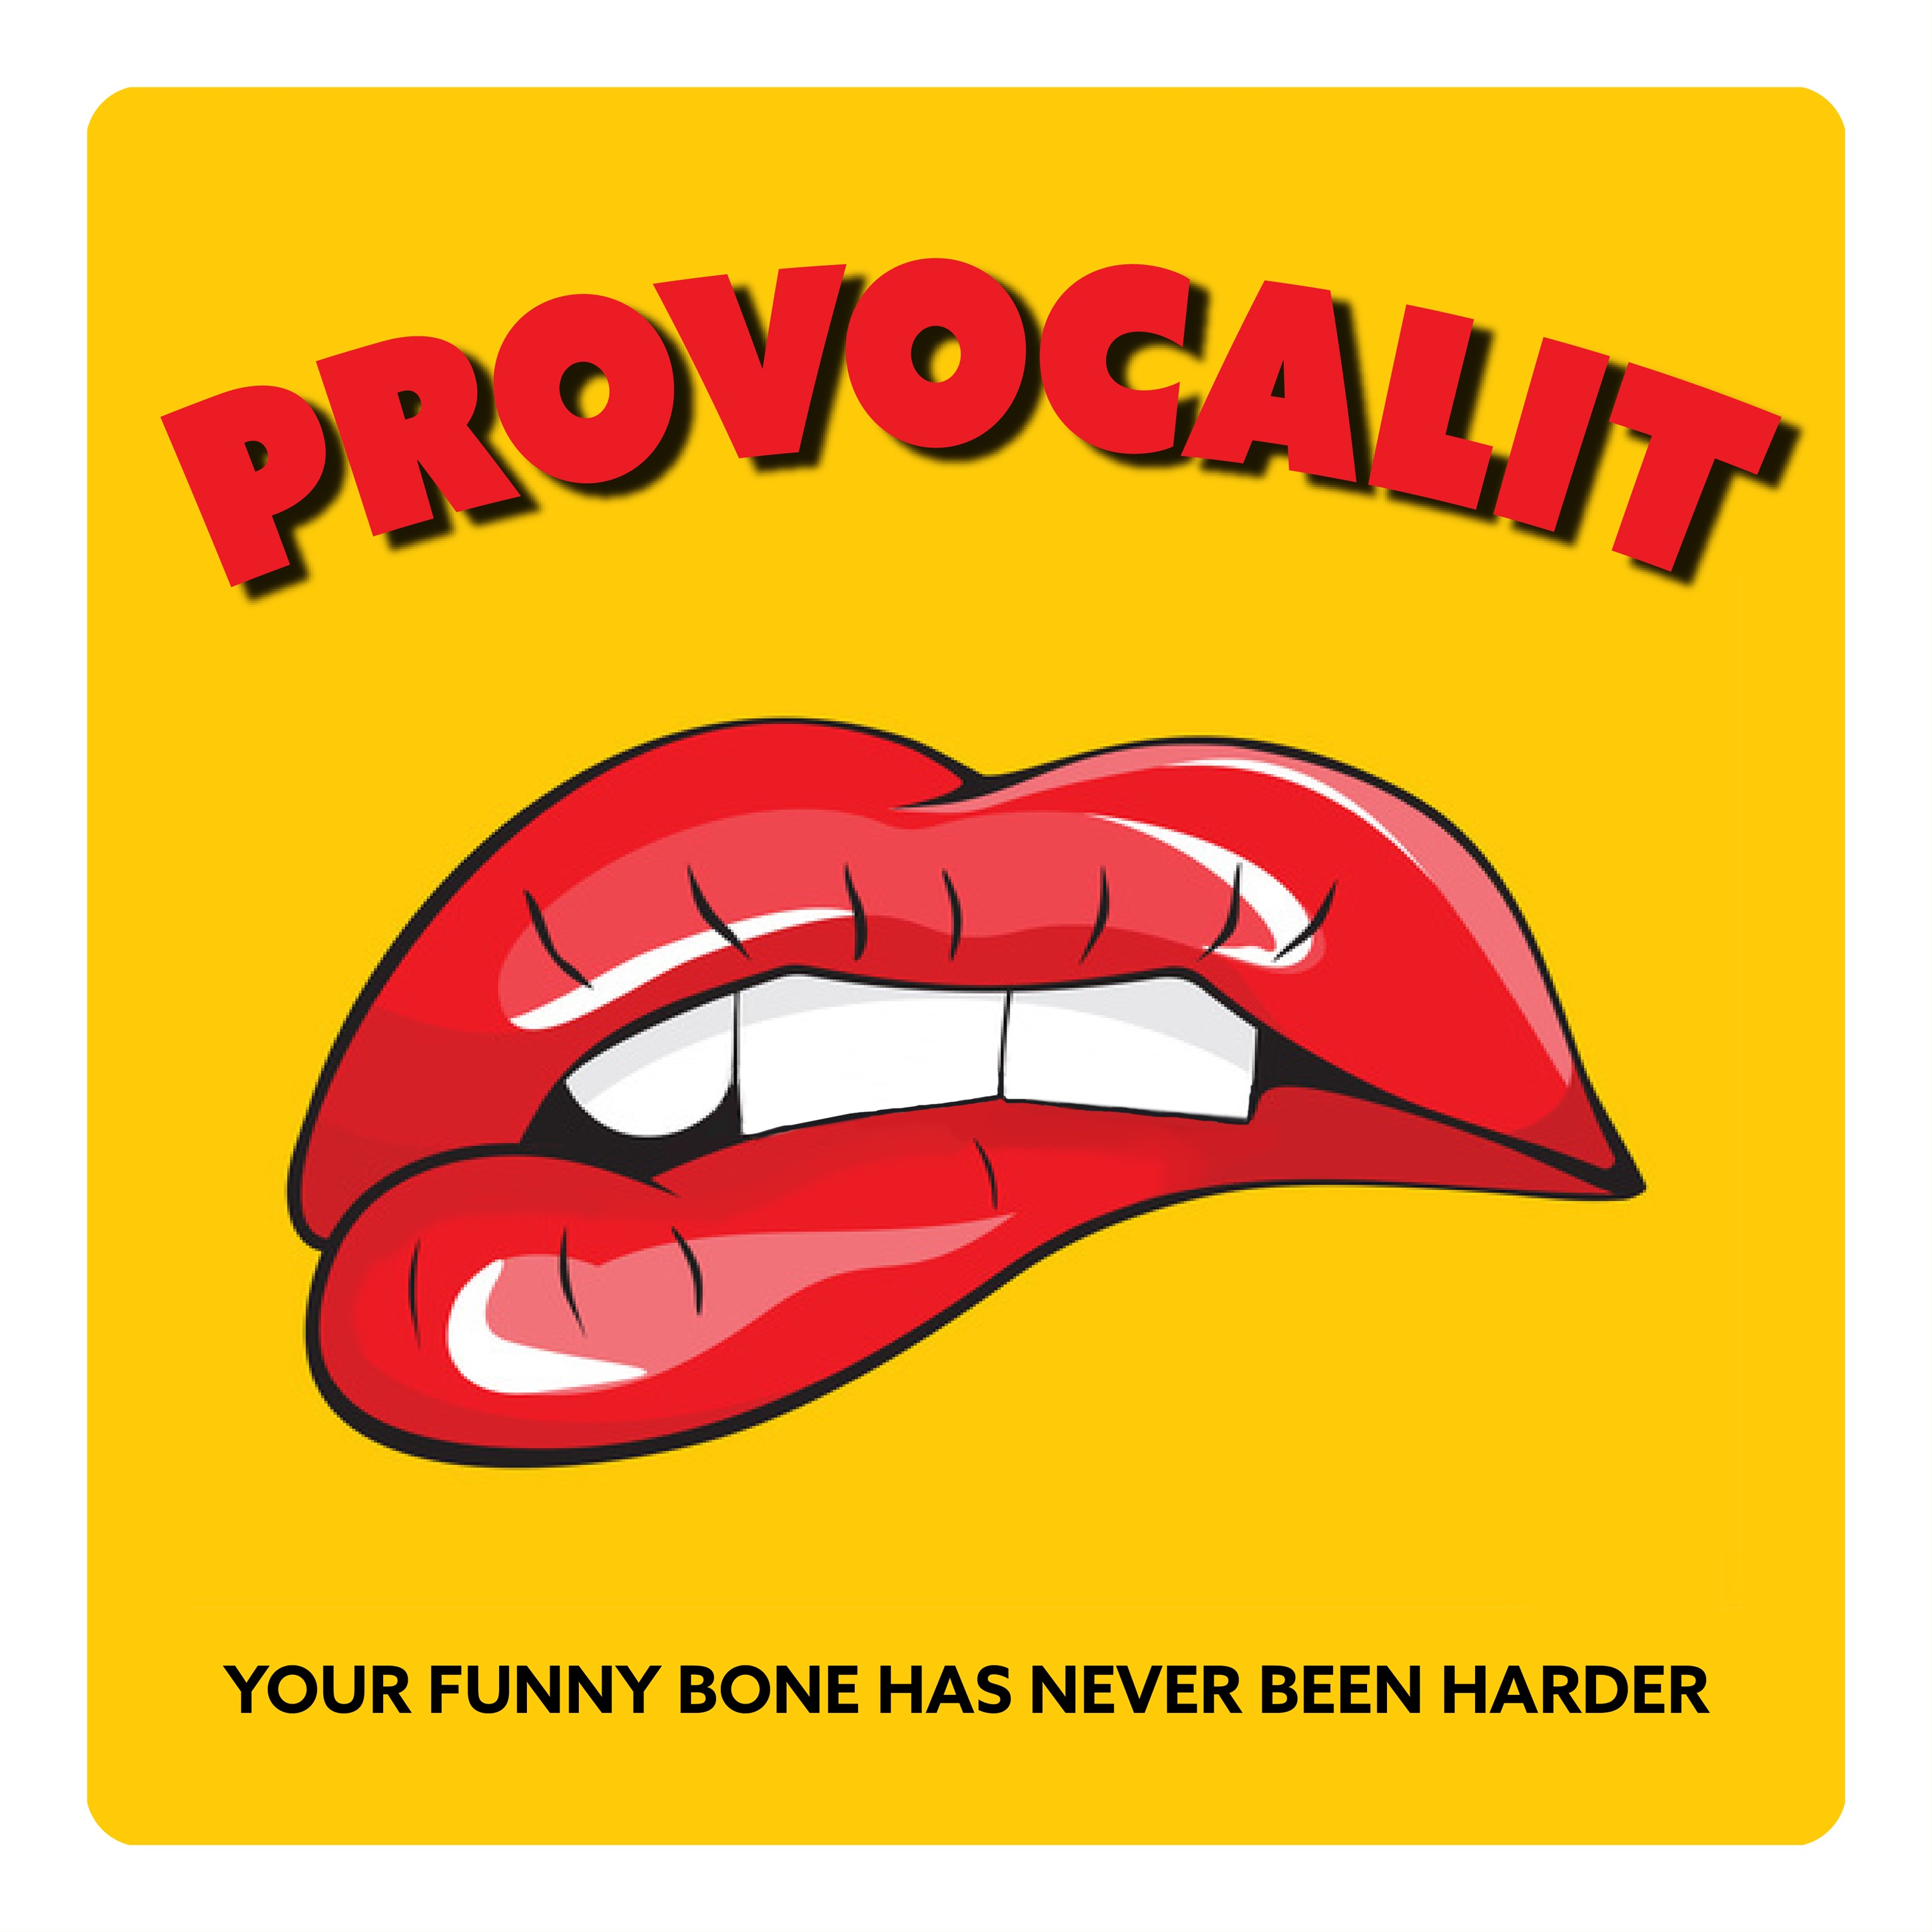 Provocalit